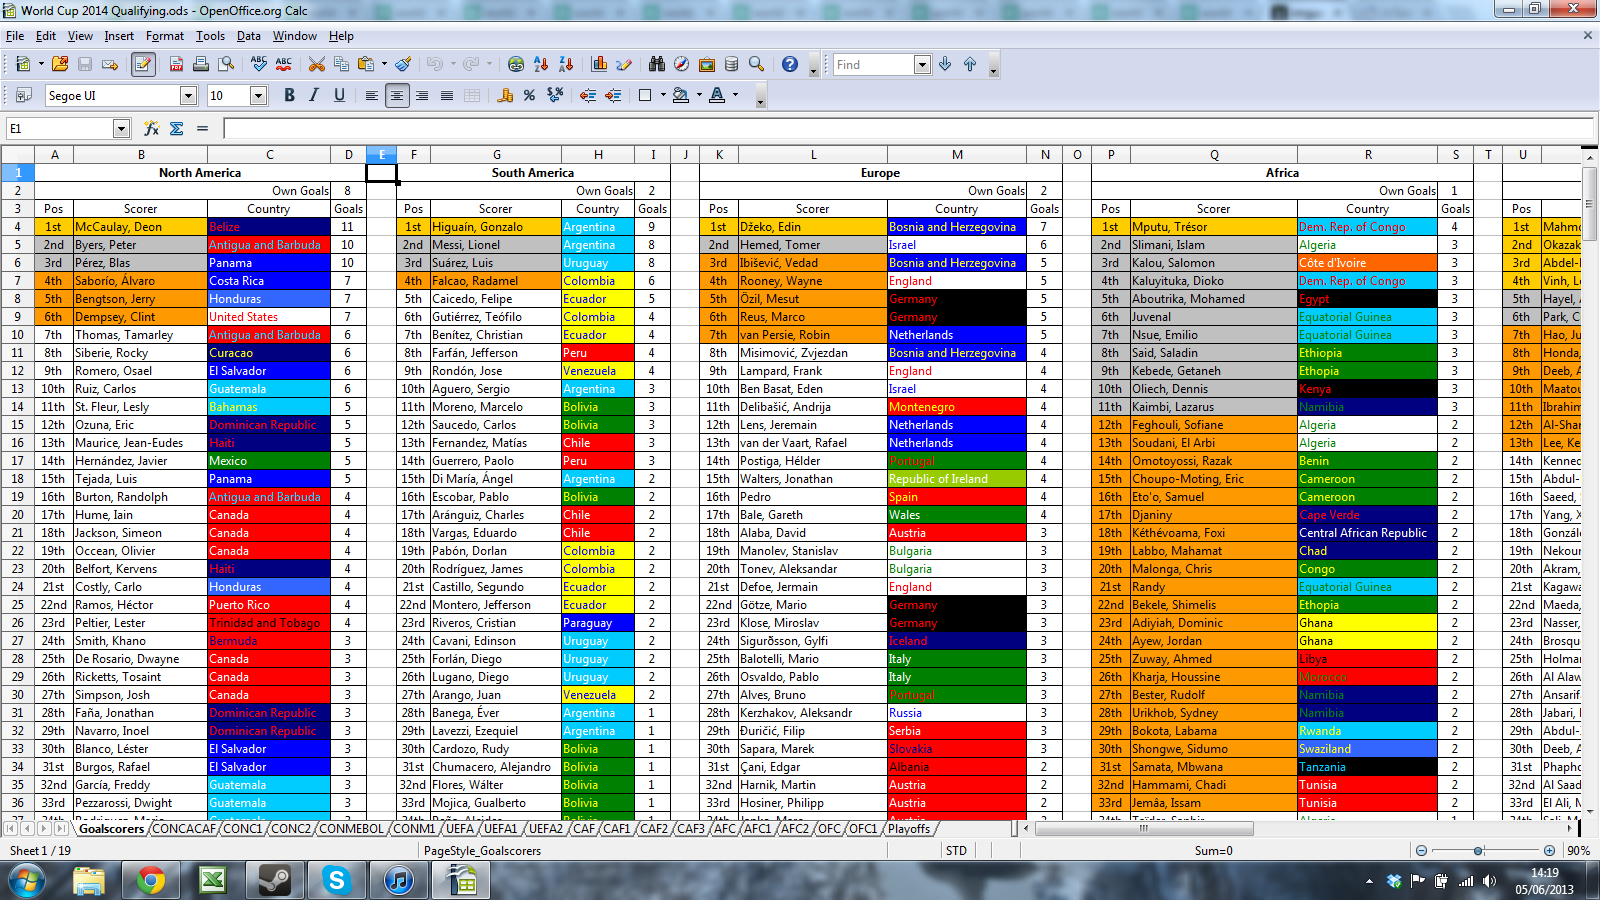 Champions League Spreadsheet With I Make Spreadsheets Of Football Tournaments. Here's Some That I've